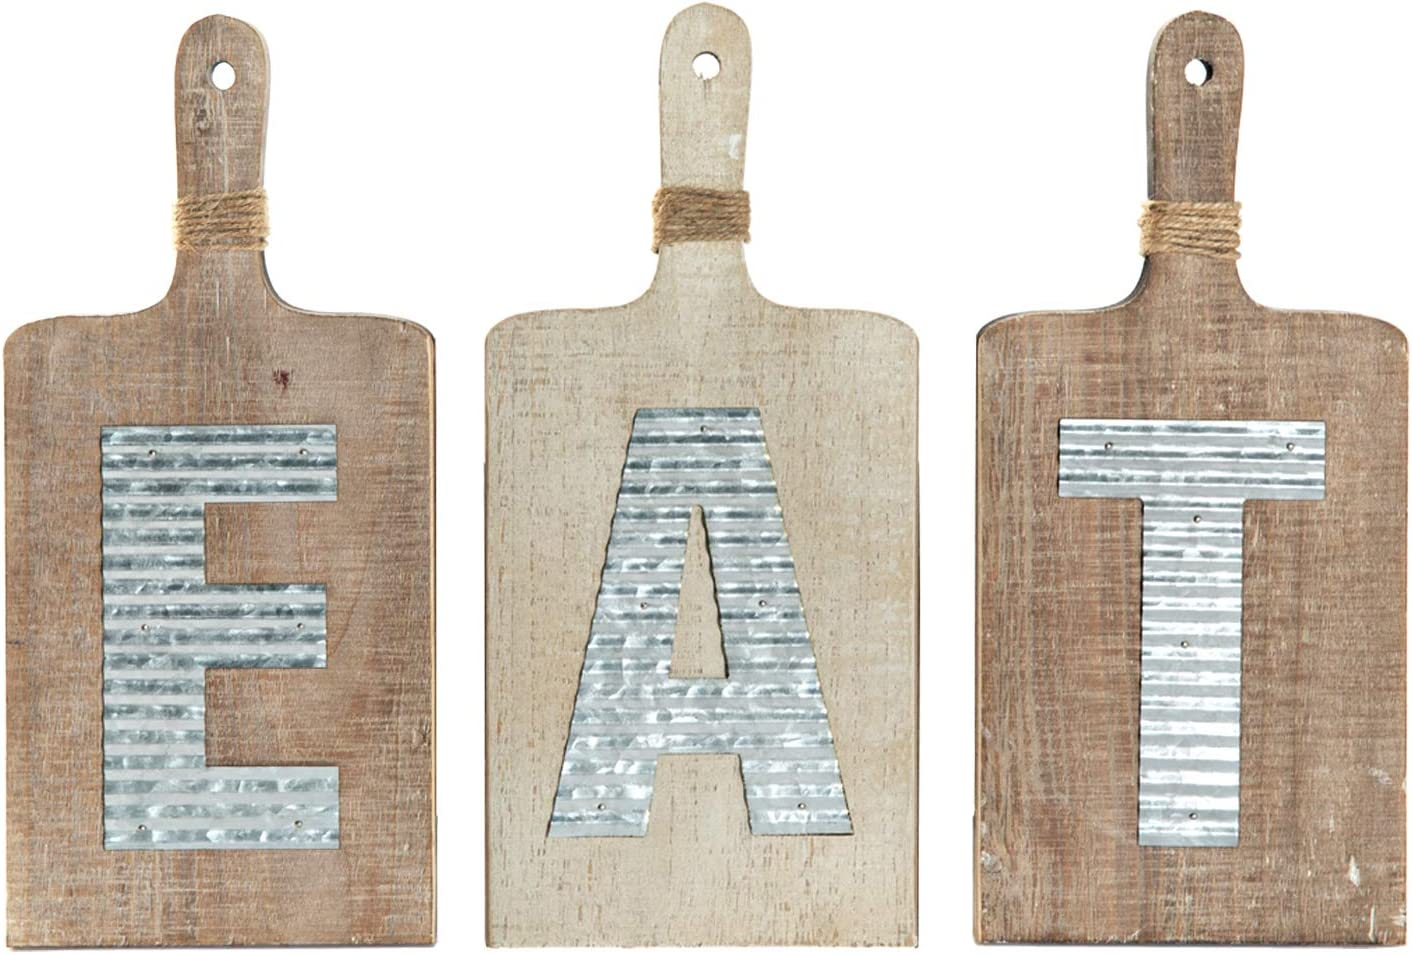 "EMAX HOME Large EAT Wood Sign for Kitchen Wall Decor,Rustic Farmhouse Kitchen Wall Art,Vintage Wooden Plaque with Eat Letters for Kitchen,Distressed Finish 15"" x 7"" Each"